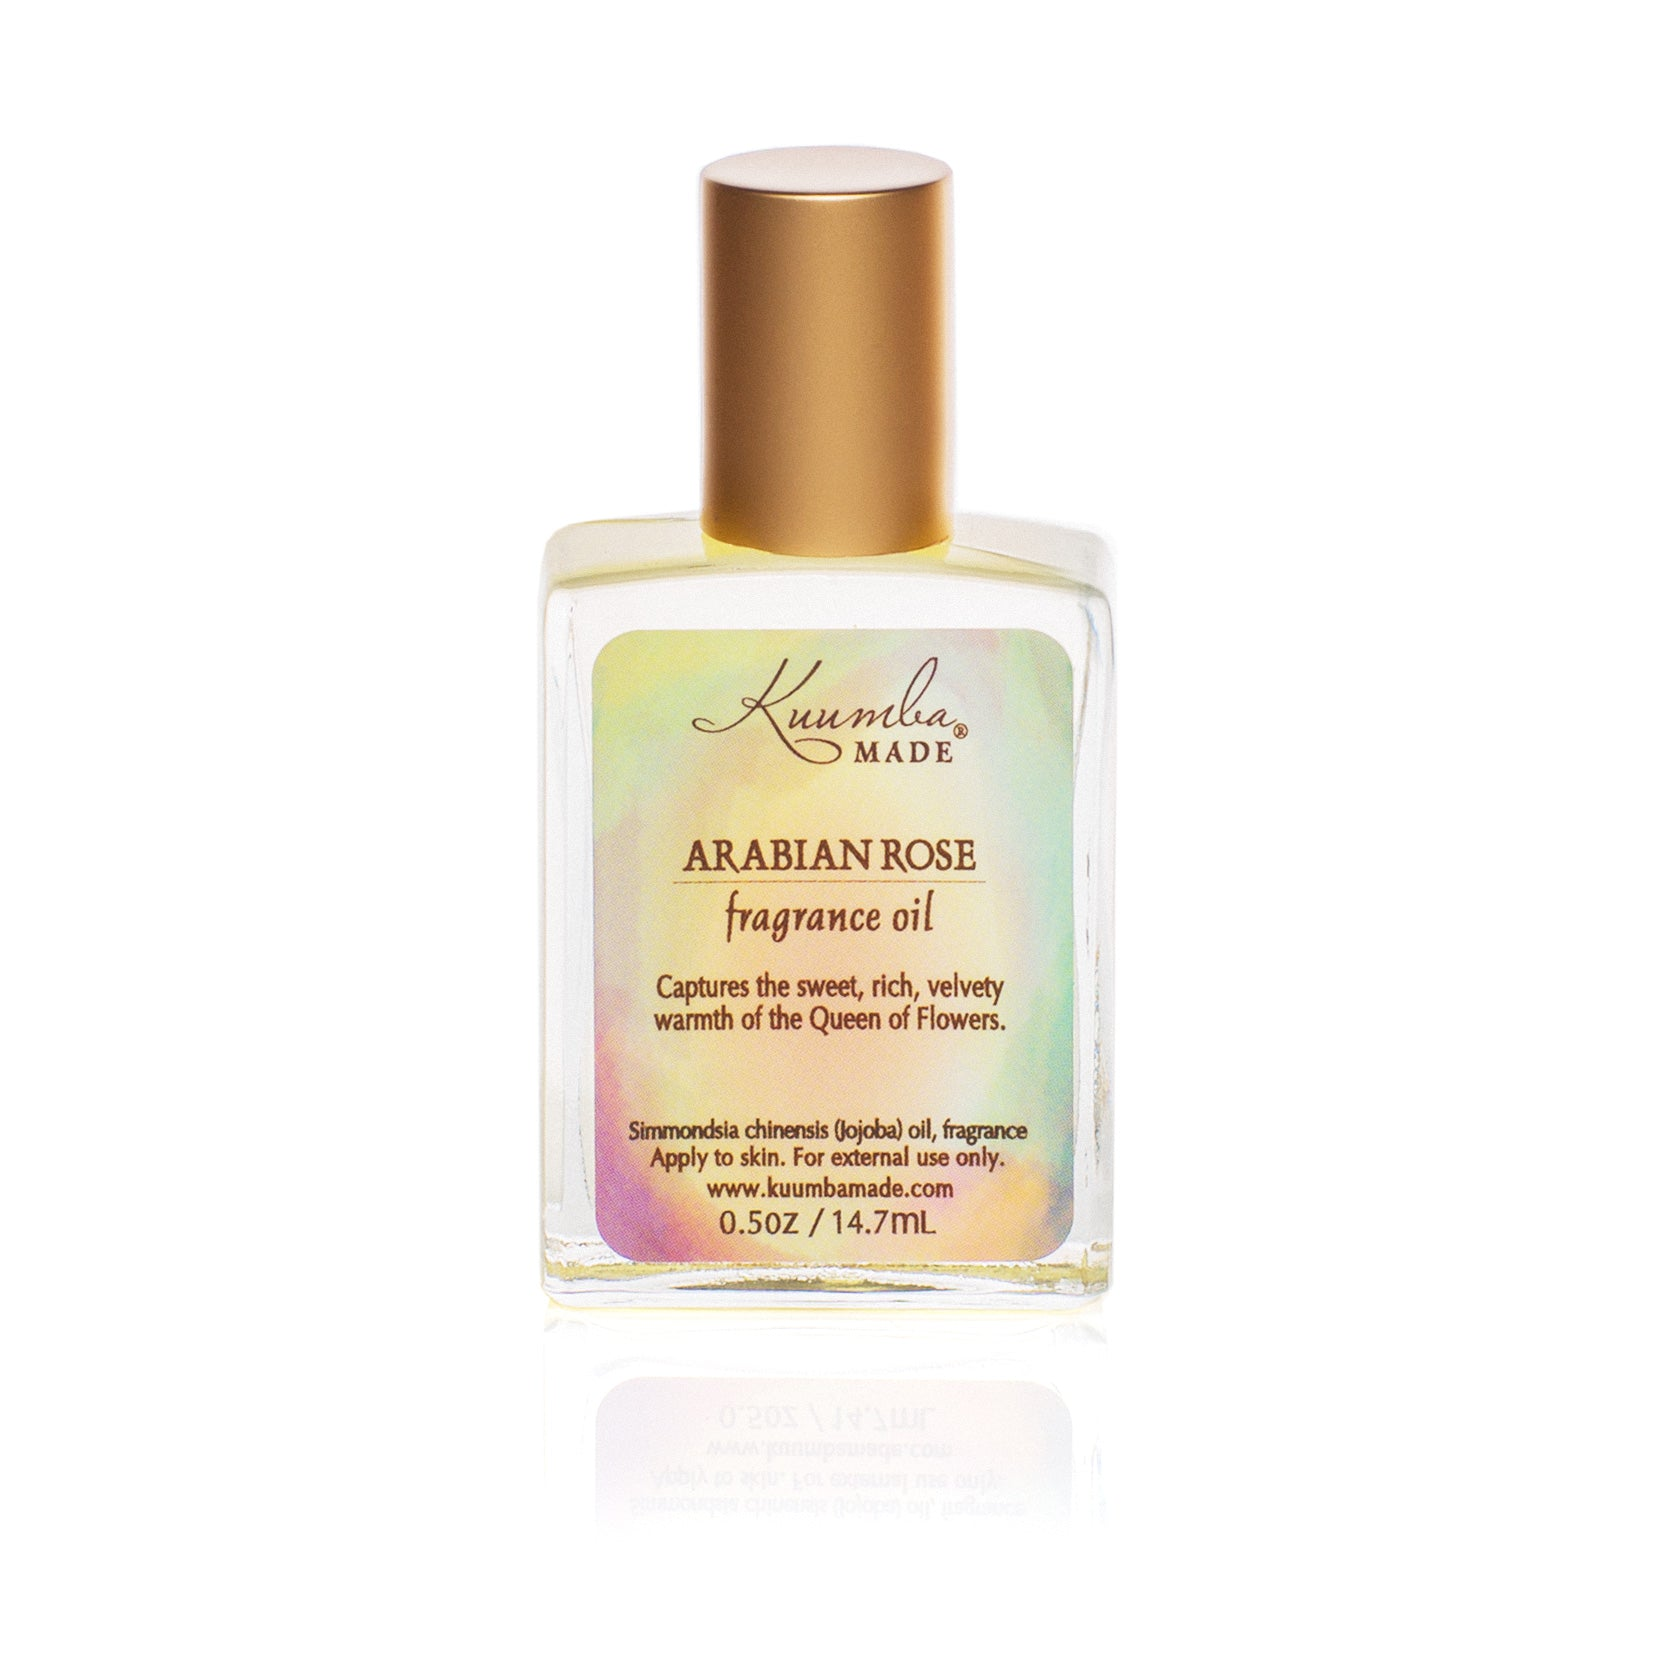 Arabian Rose Fragrance Oil | 0.5oz | 14.7mL